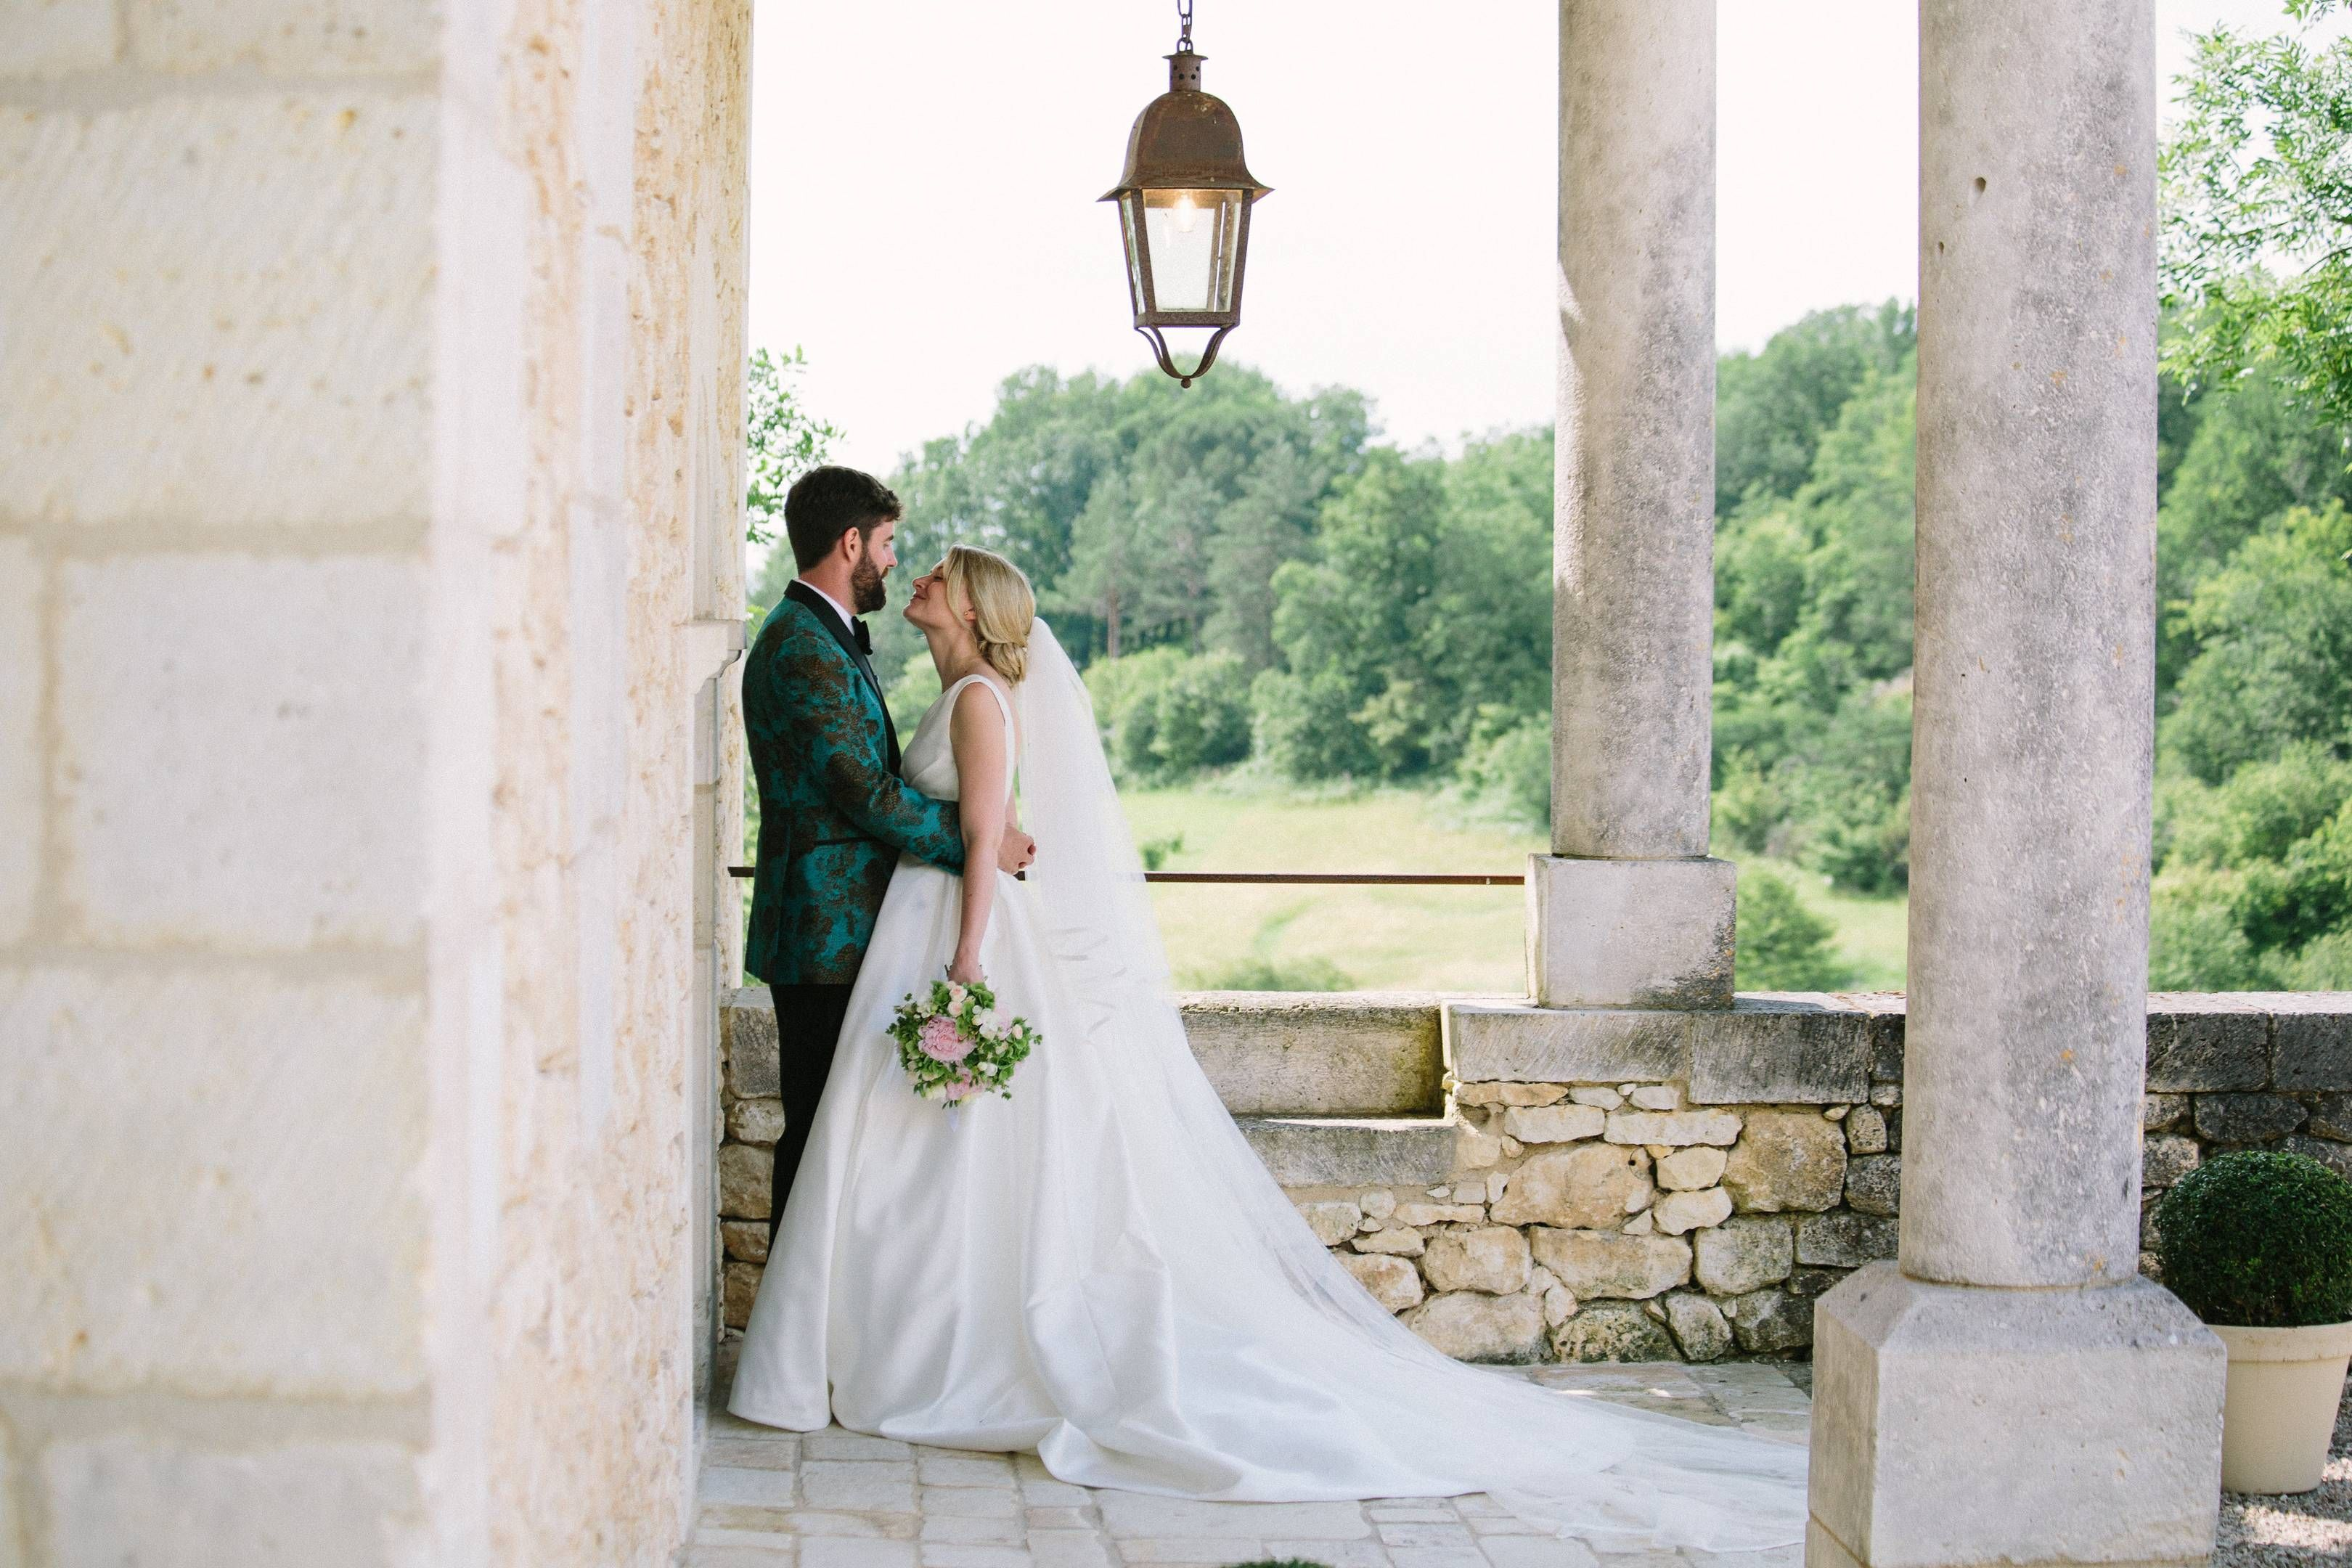 10 Tips About Wedding Dress Preservation All Brides Should Know Wedding Dresses Wedding Dress Preservation Wedding